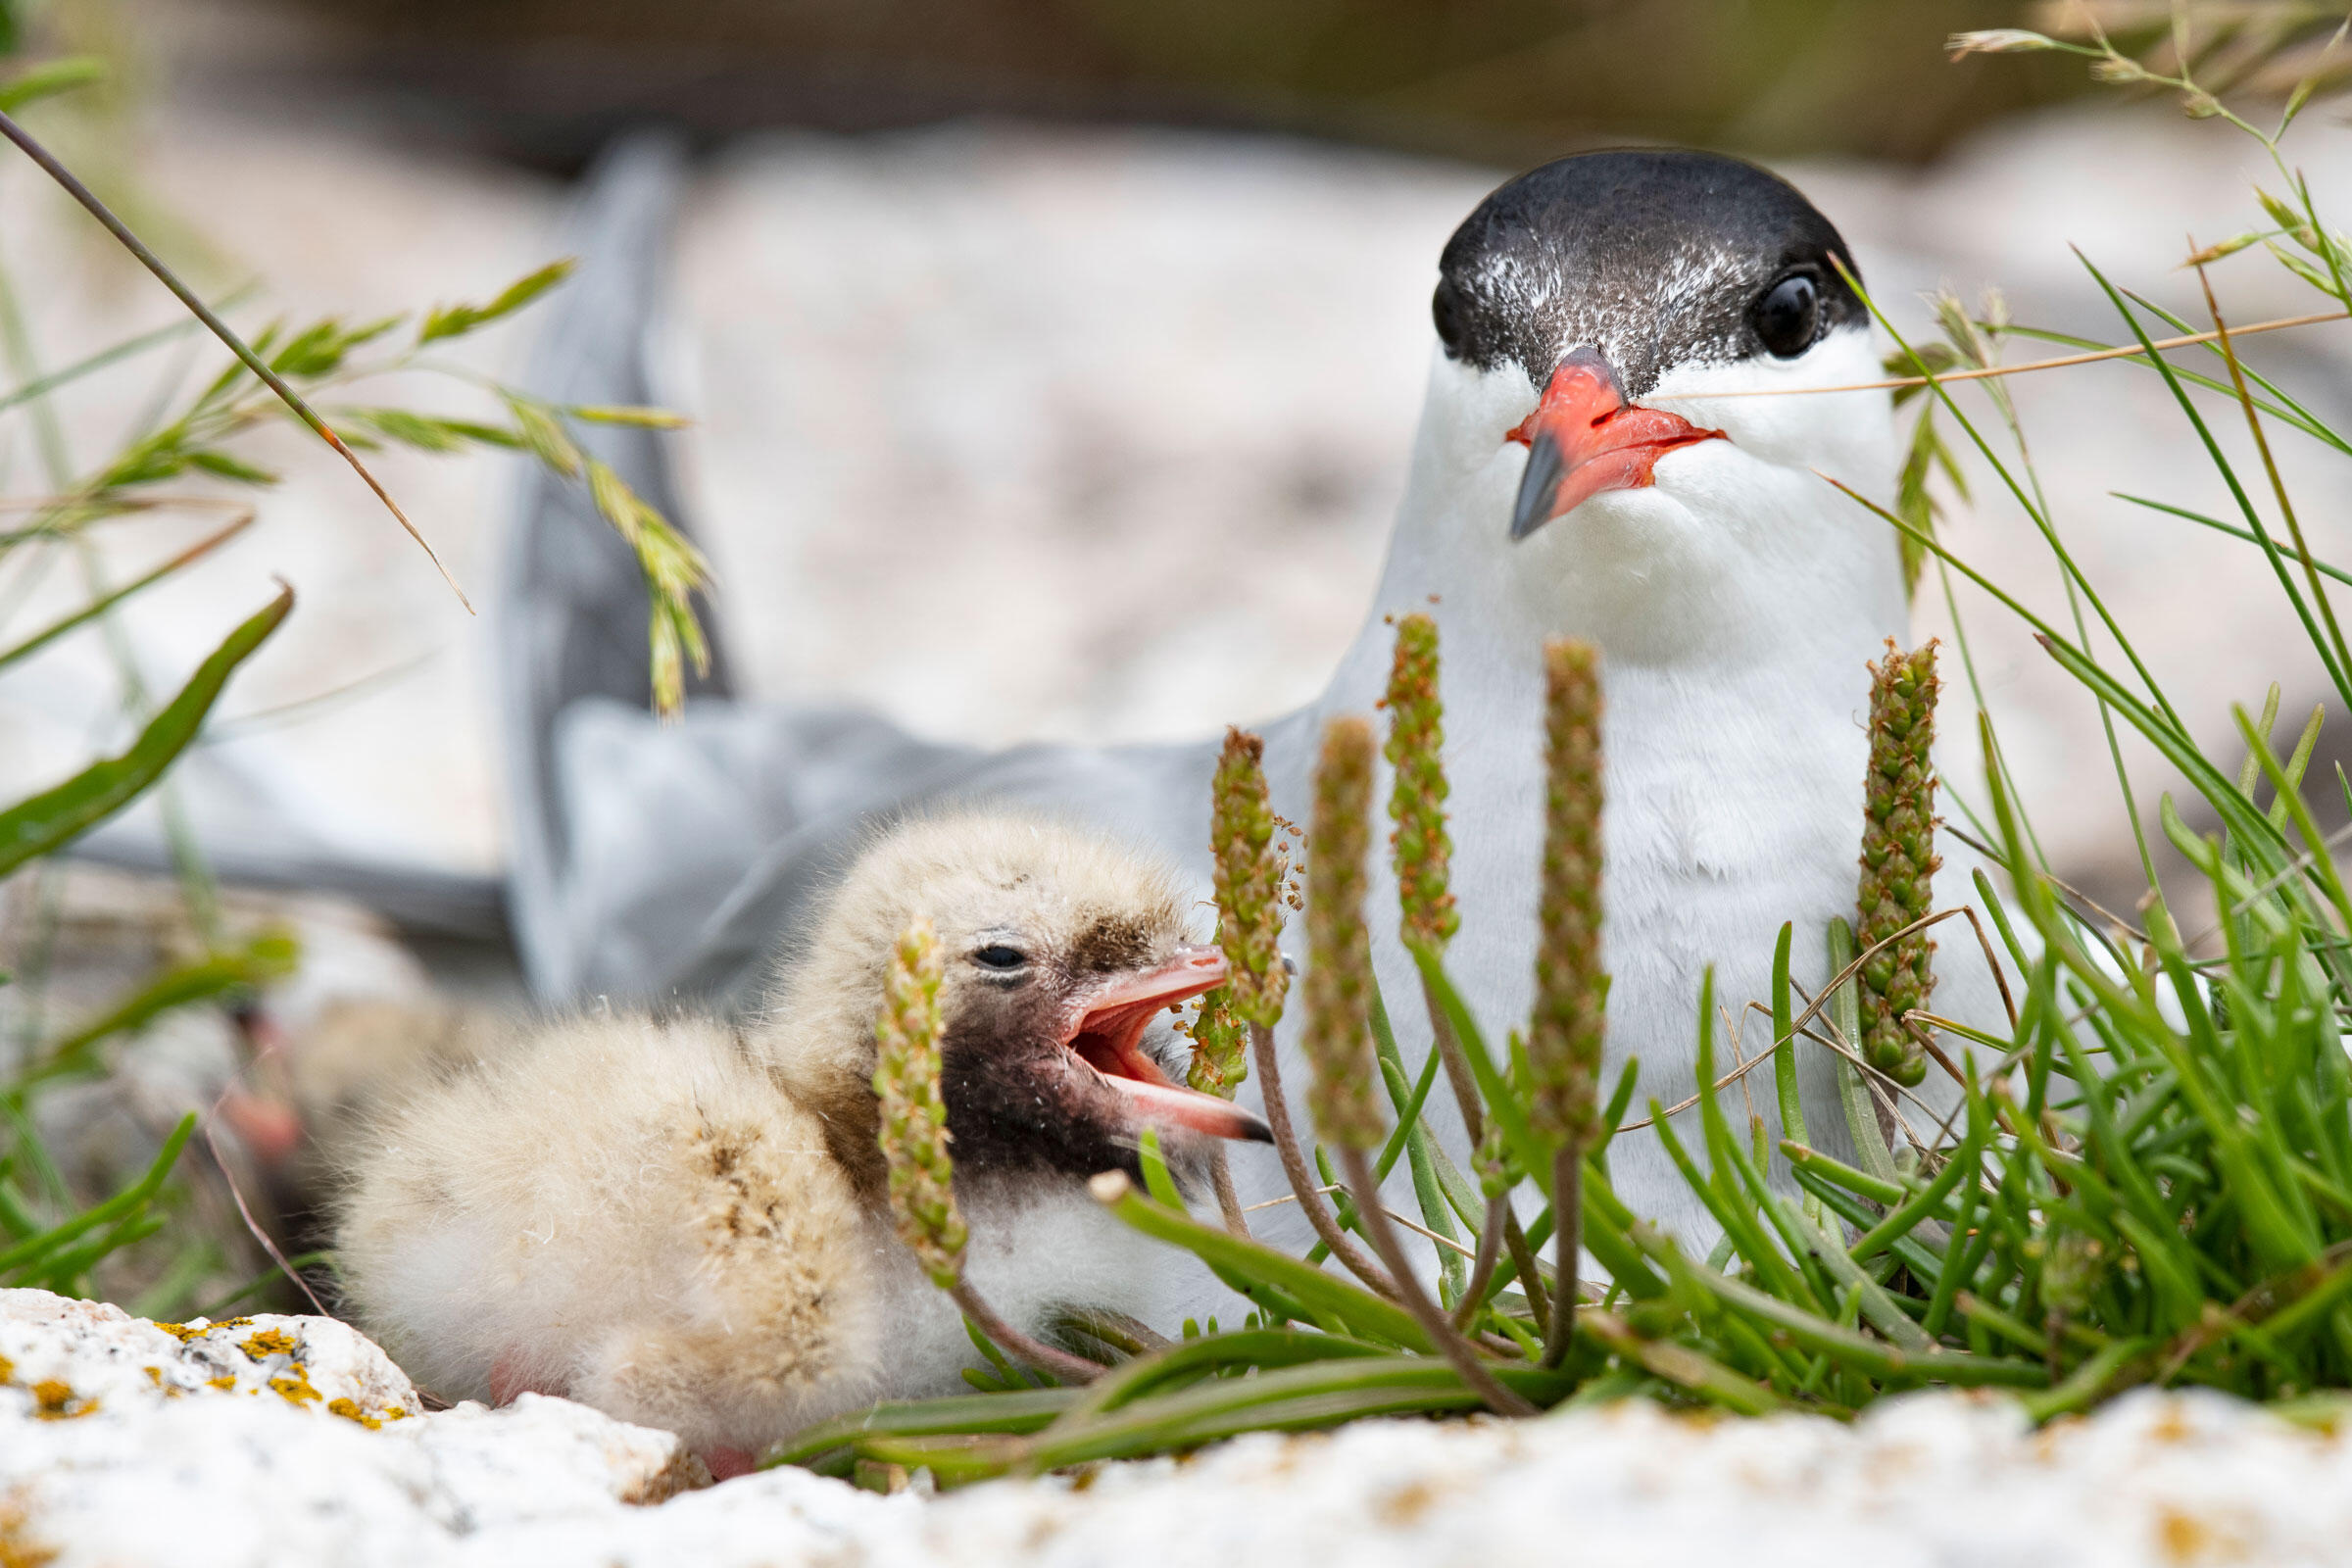 A Common Tern and its chick on a nest. Chris Linder